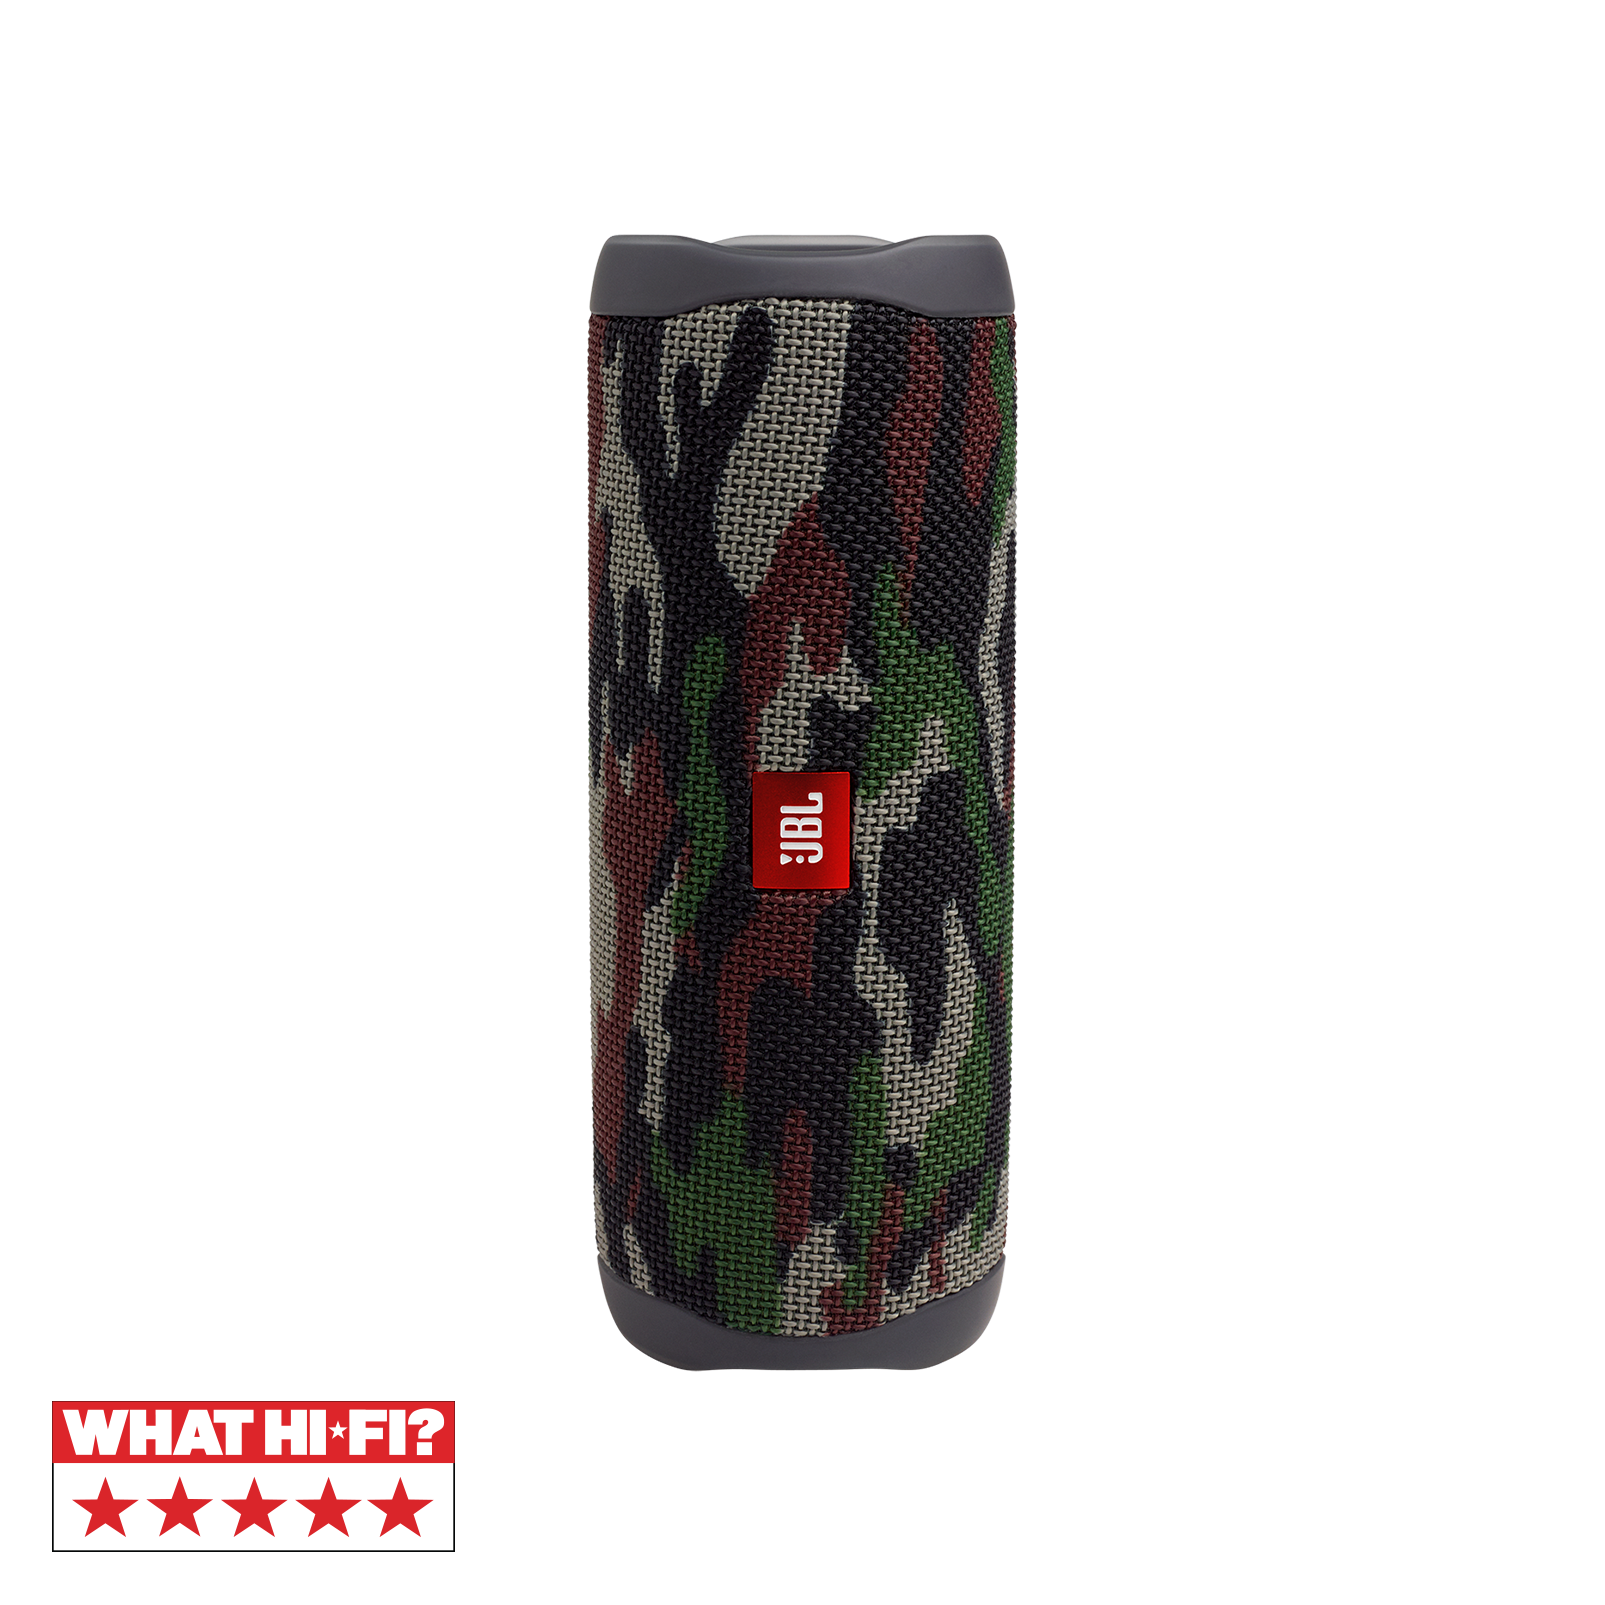 JBL FLIP 5 - Squad - Portable Waterproof Speaker - Hero